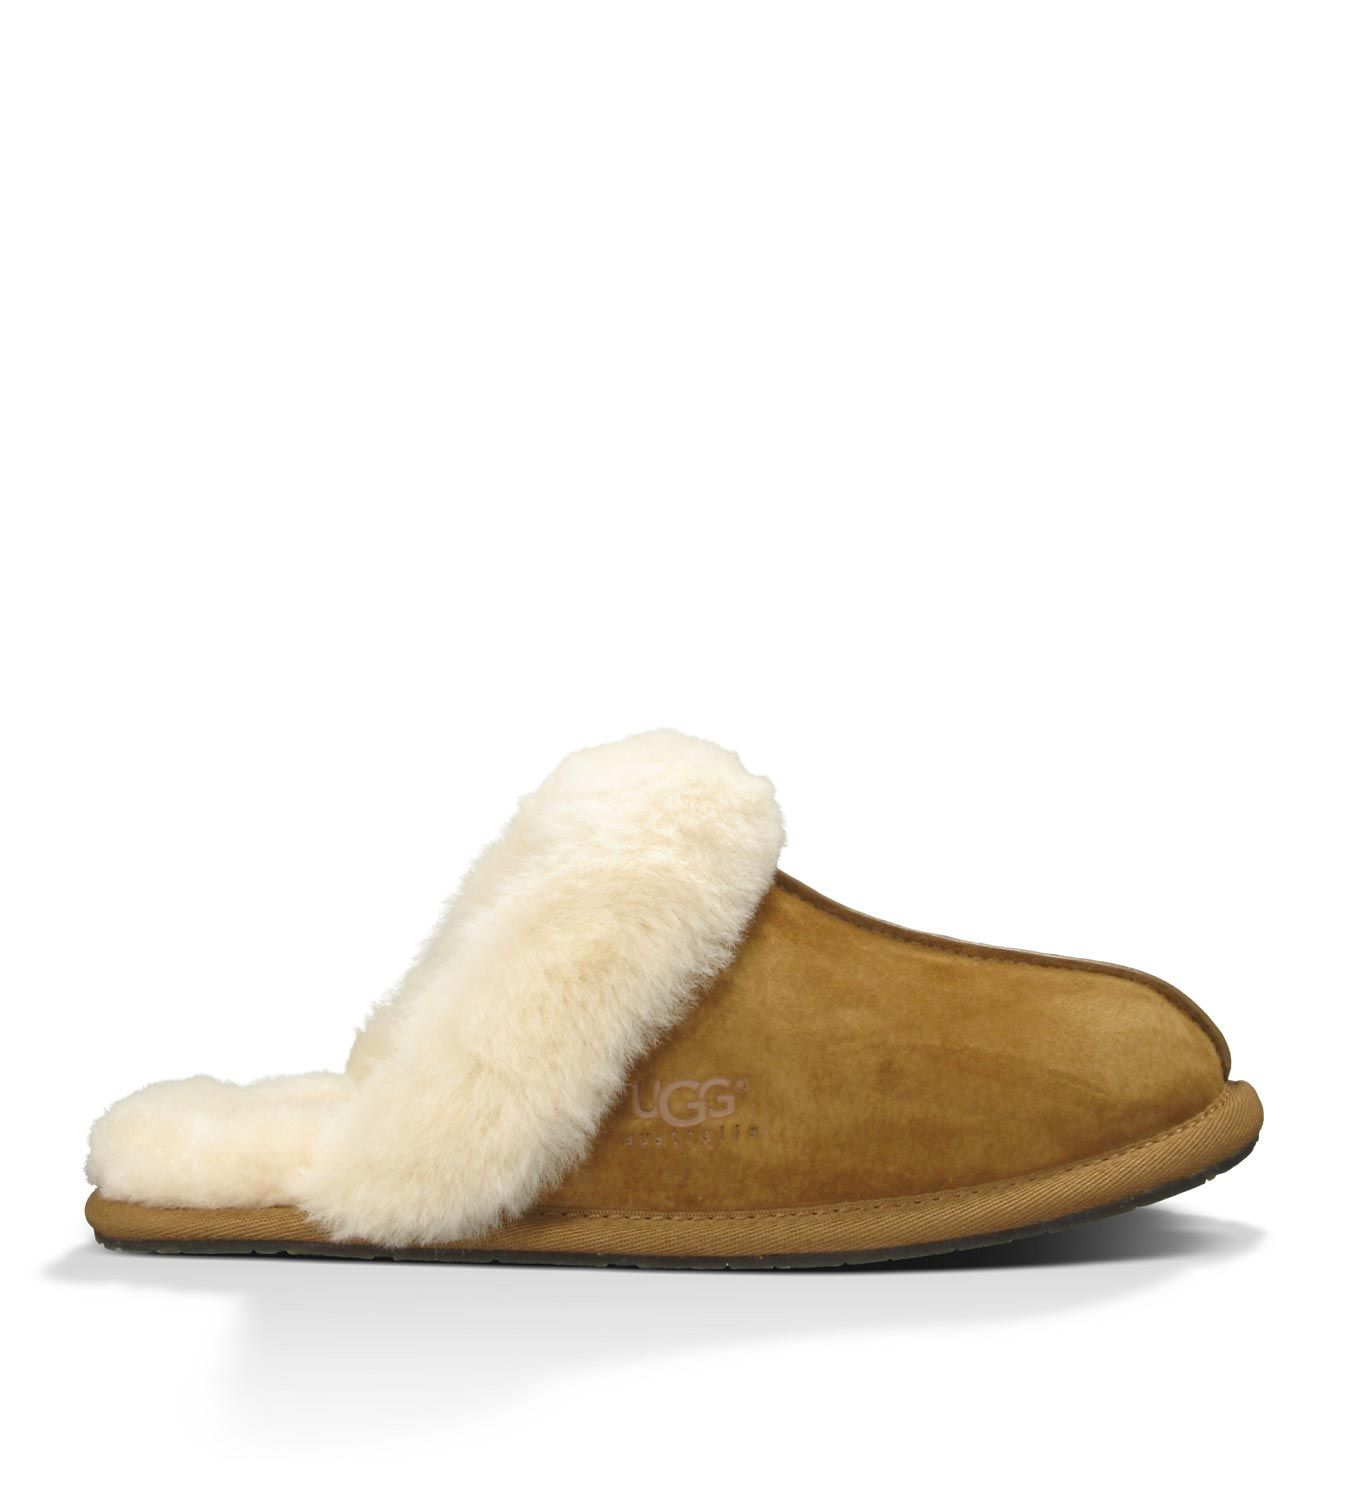 Clearance Womens Casual Shoes - UGG Scuffette II Chestnut (Suede)